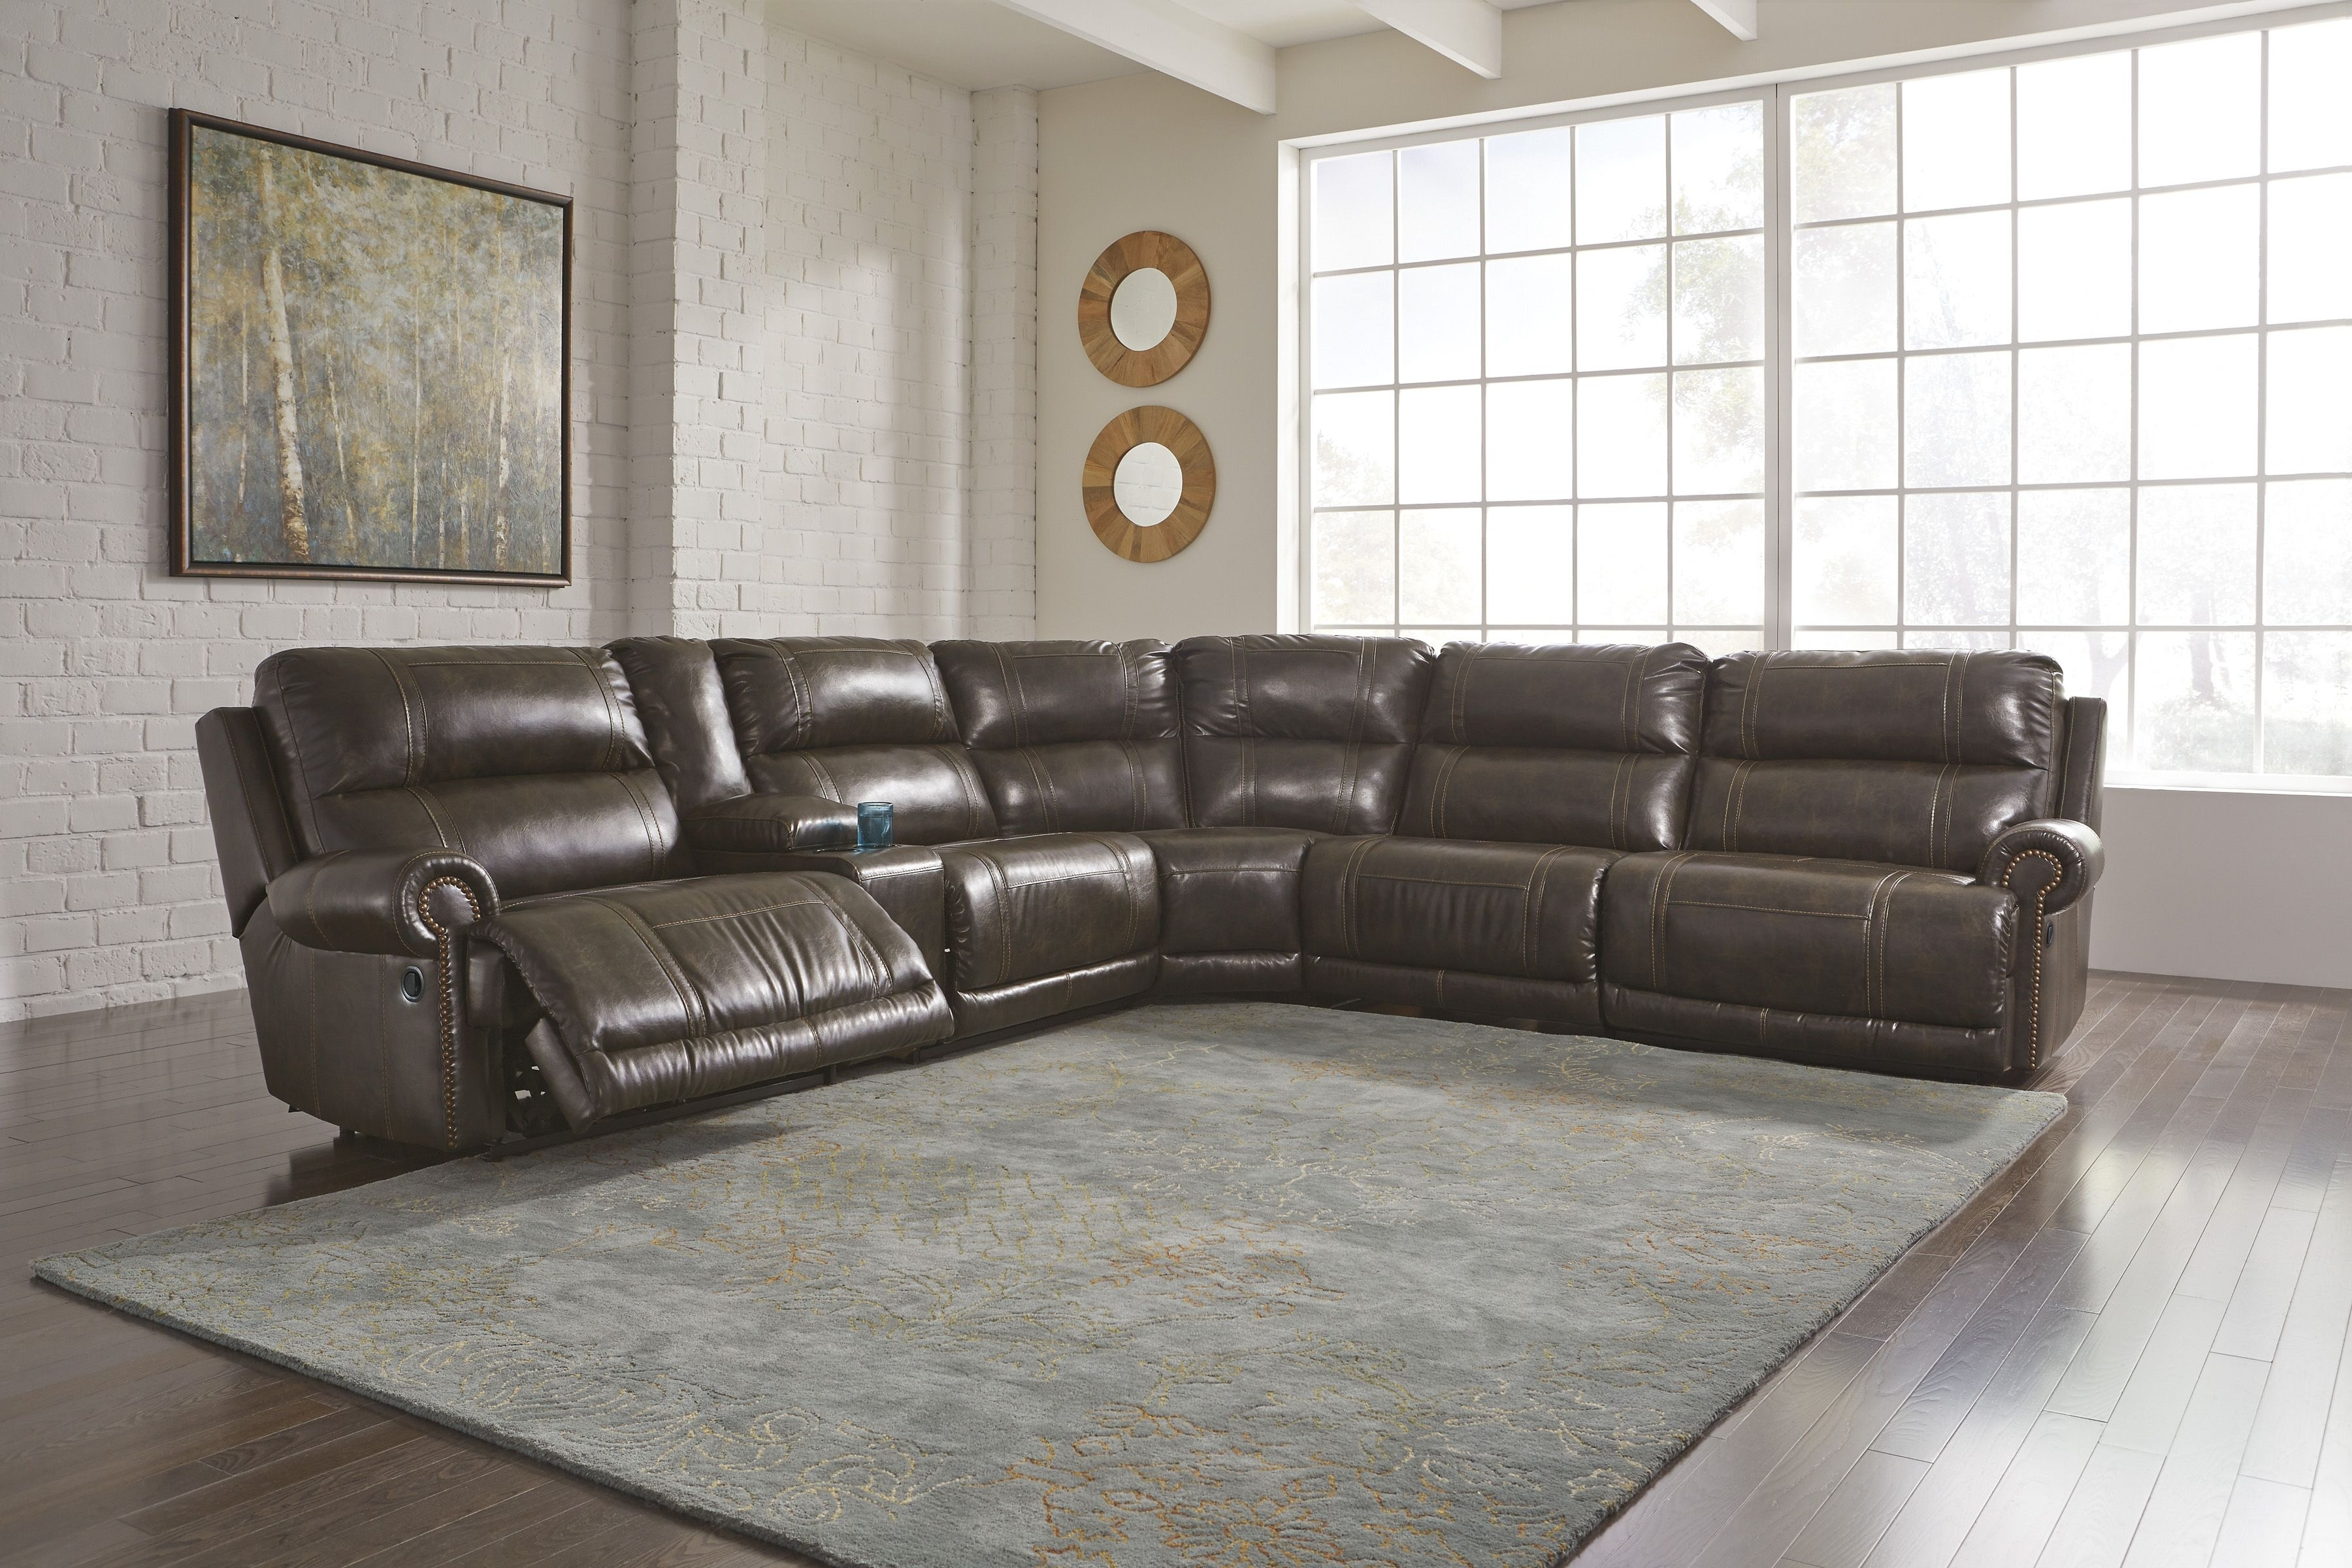 Dak – Antique 7 Piece Sectional | Living Rooms To Love | Pinterest Inside Blaine 4 Piece Sectionals (Image 7 of 25)